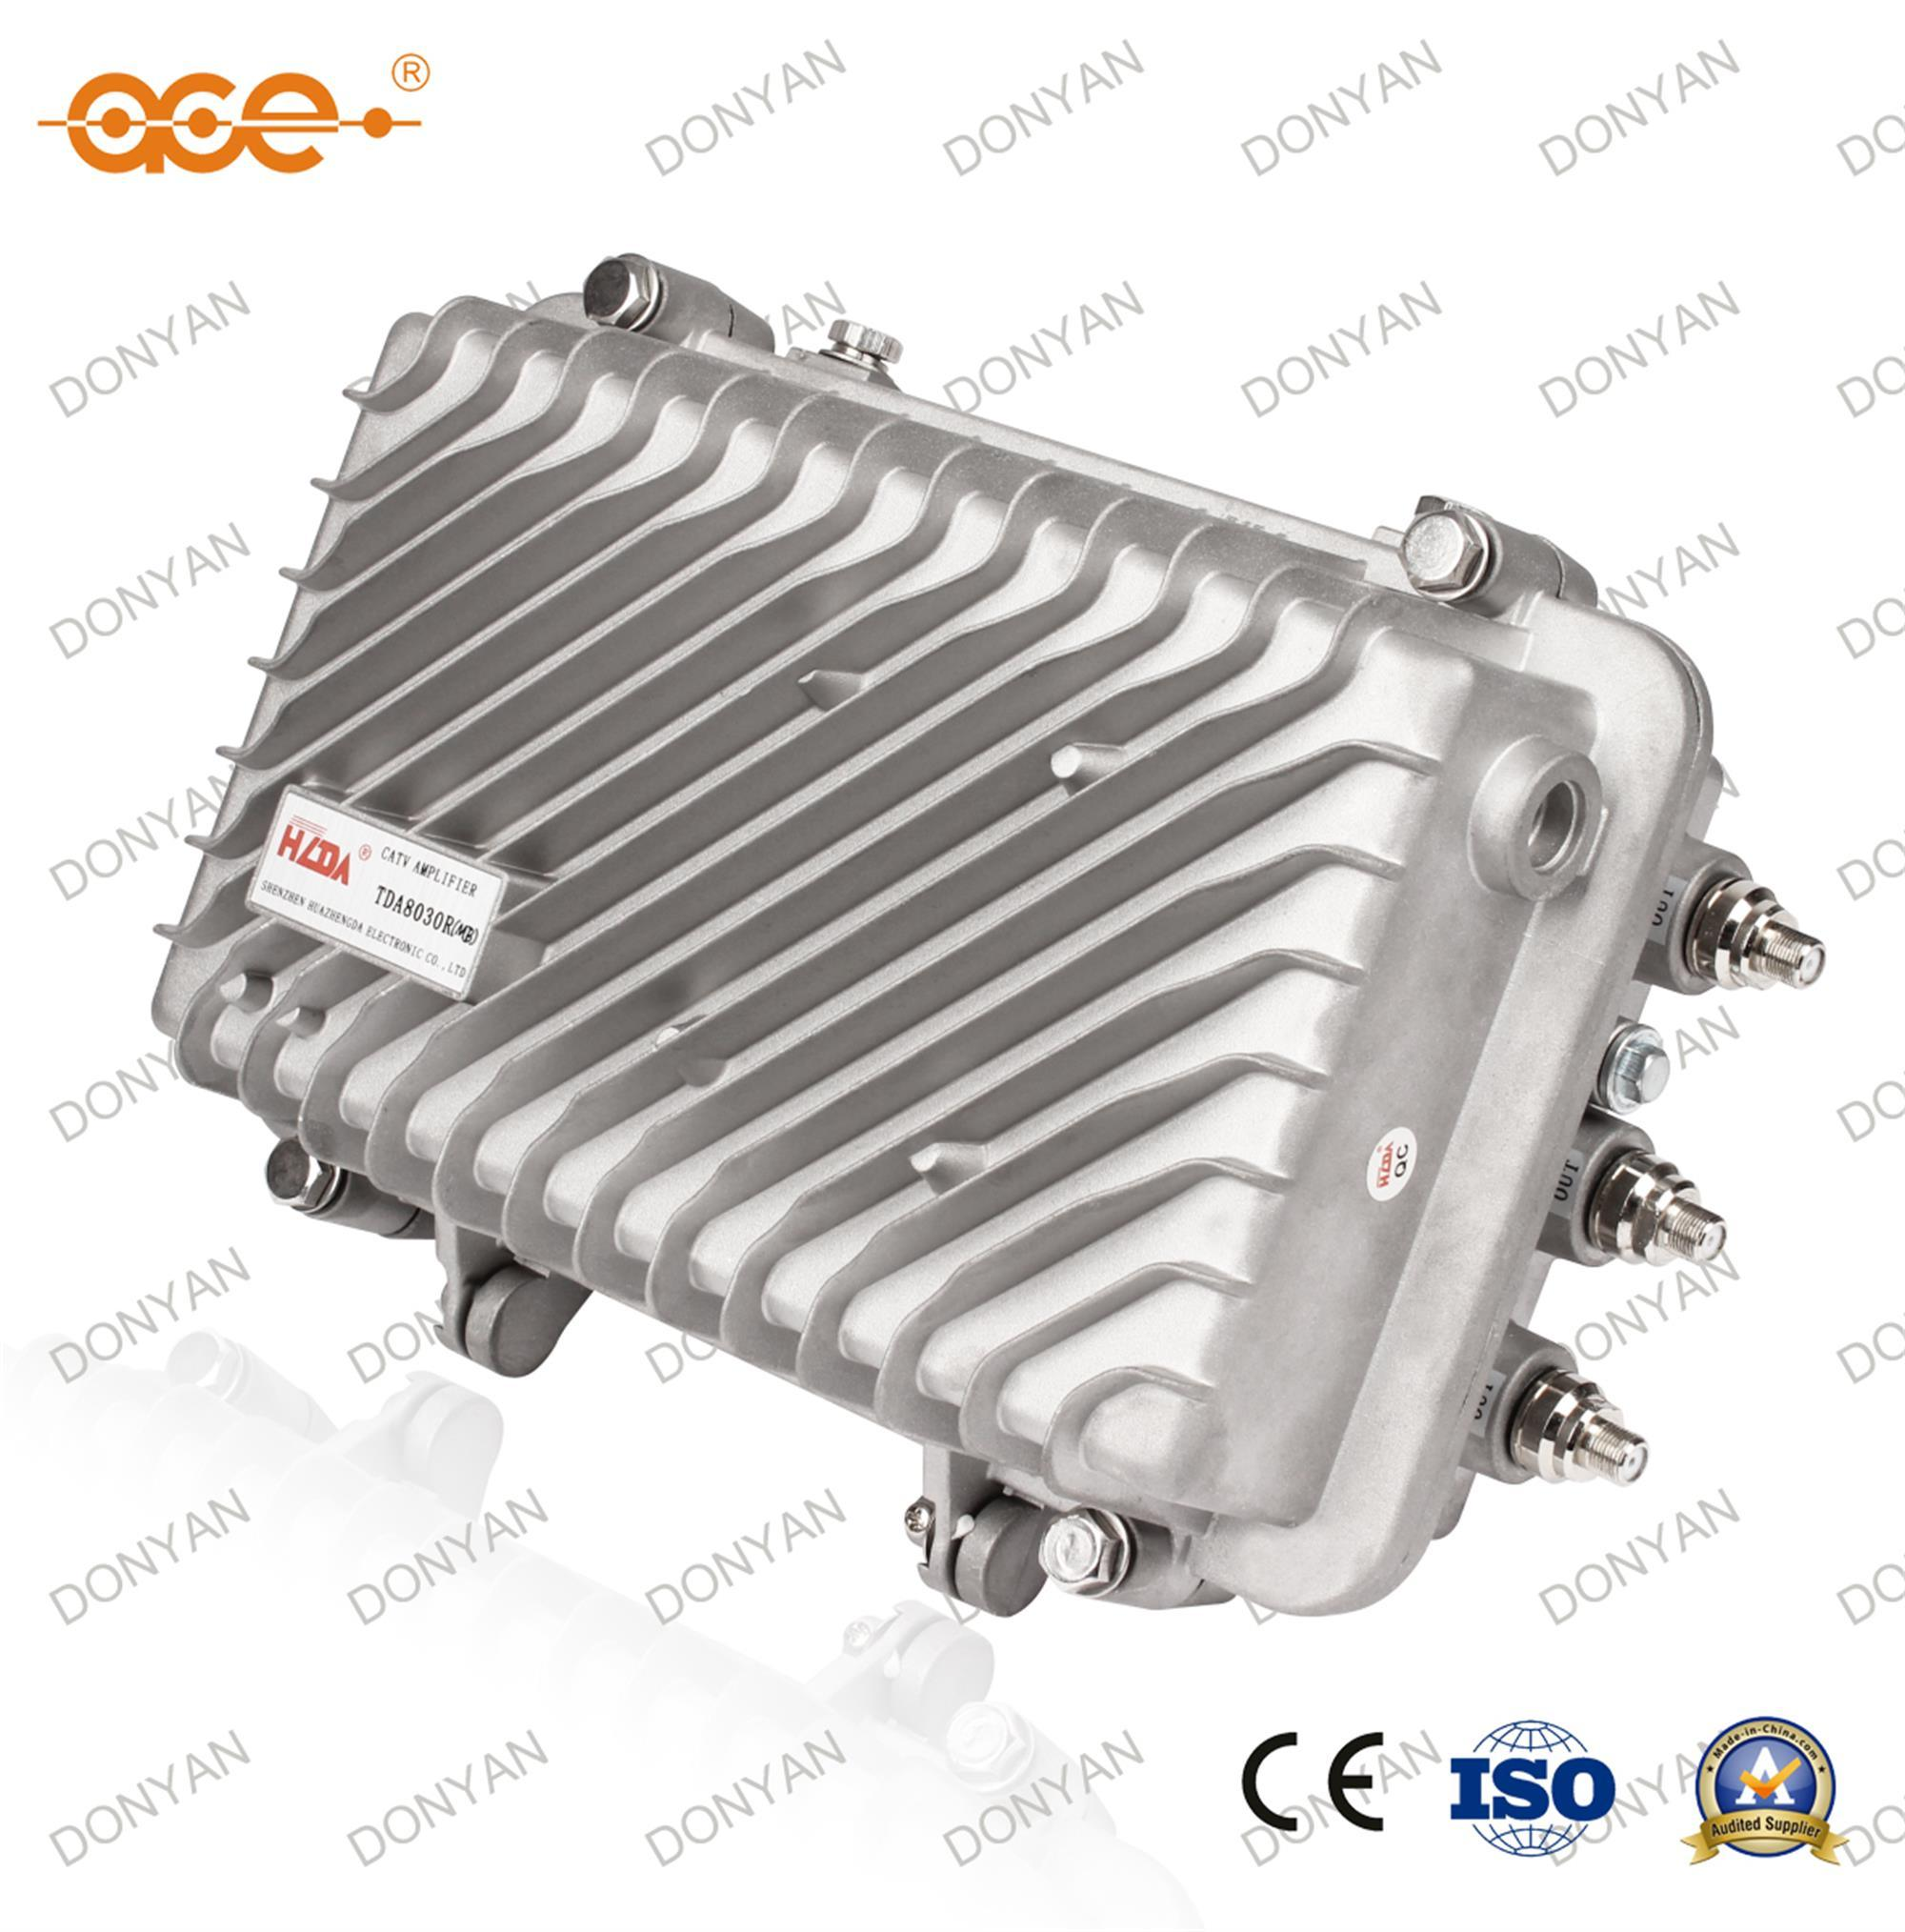 Tda8030r (MB) CATV Signal Amplifier (Trunk)